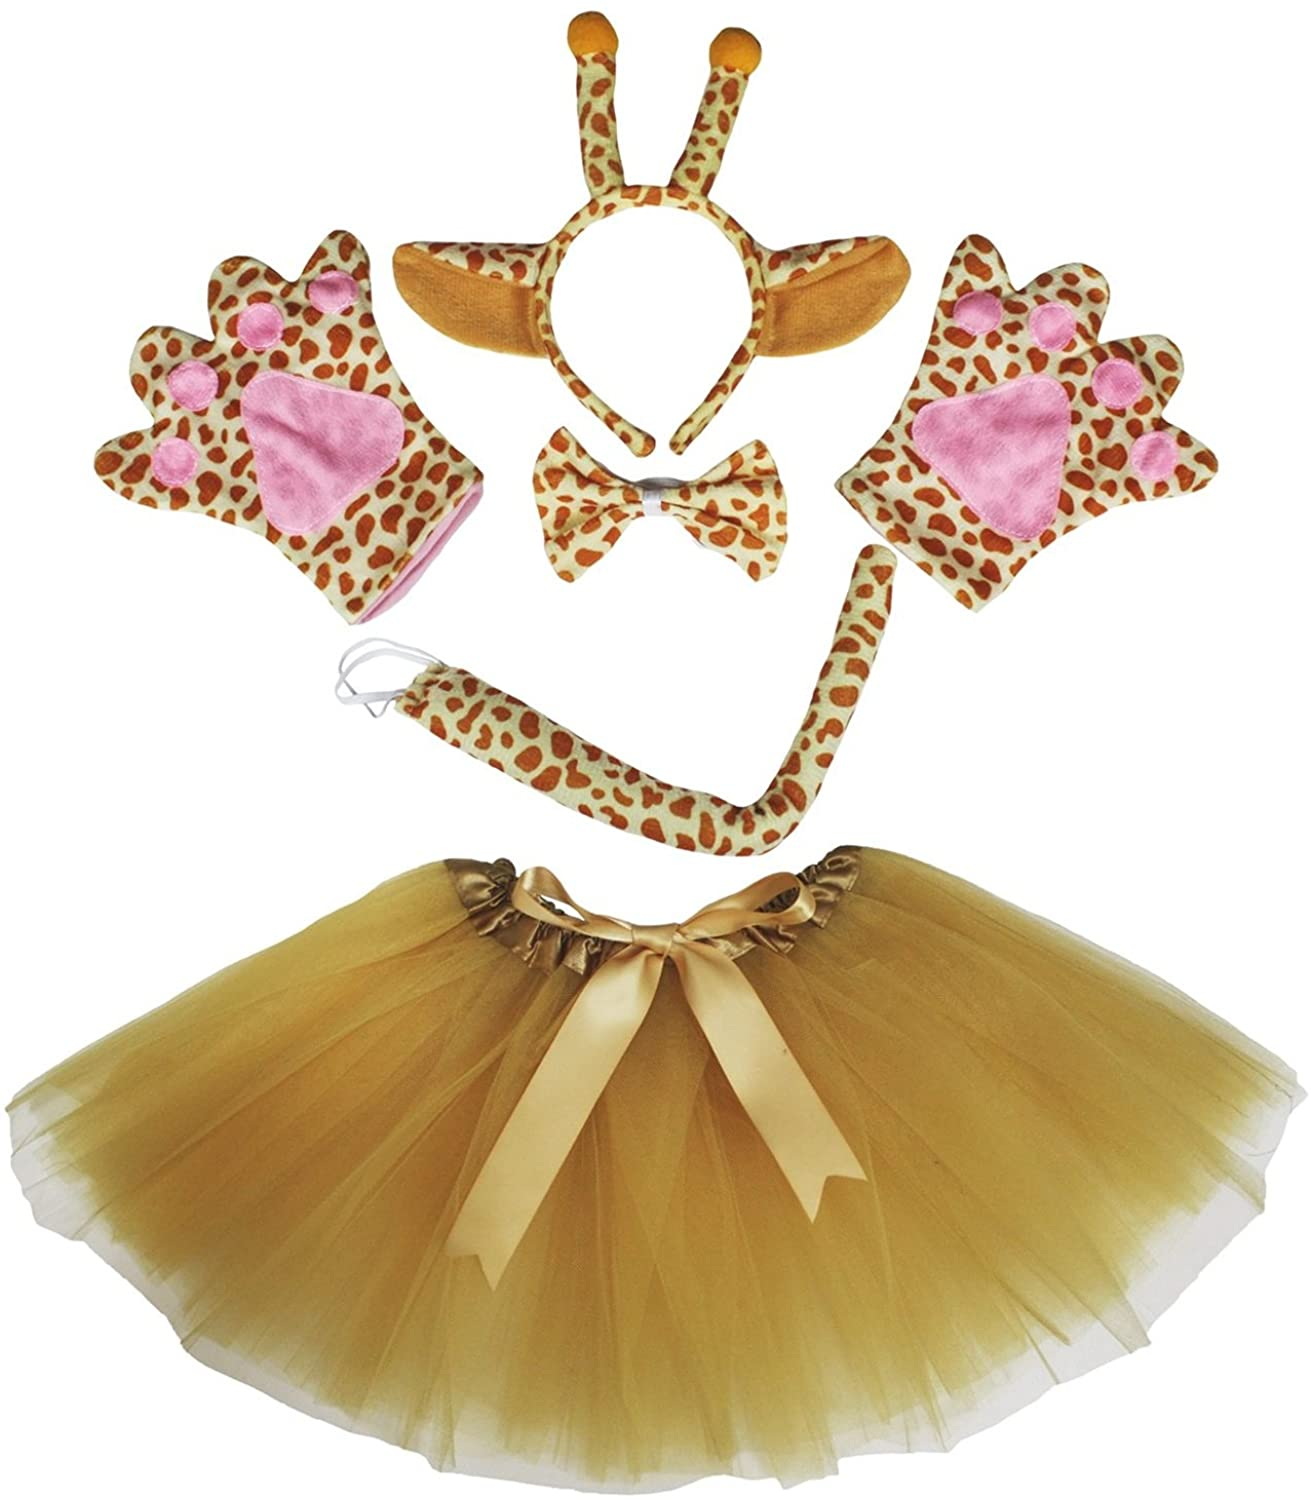 Giraffe Headband Bowtie Tail Gloves Gold Tutu 5pc Girl Costume Dress for Party (Brown)